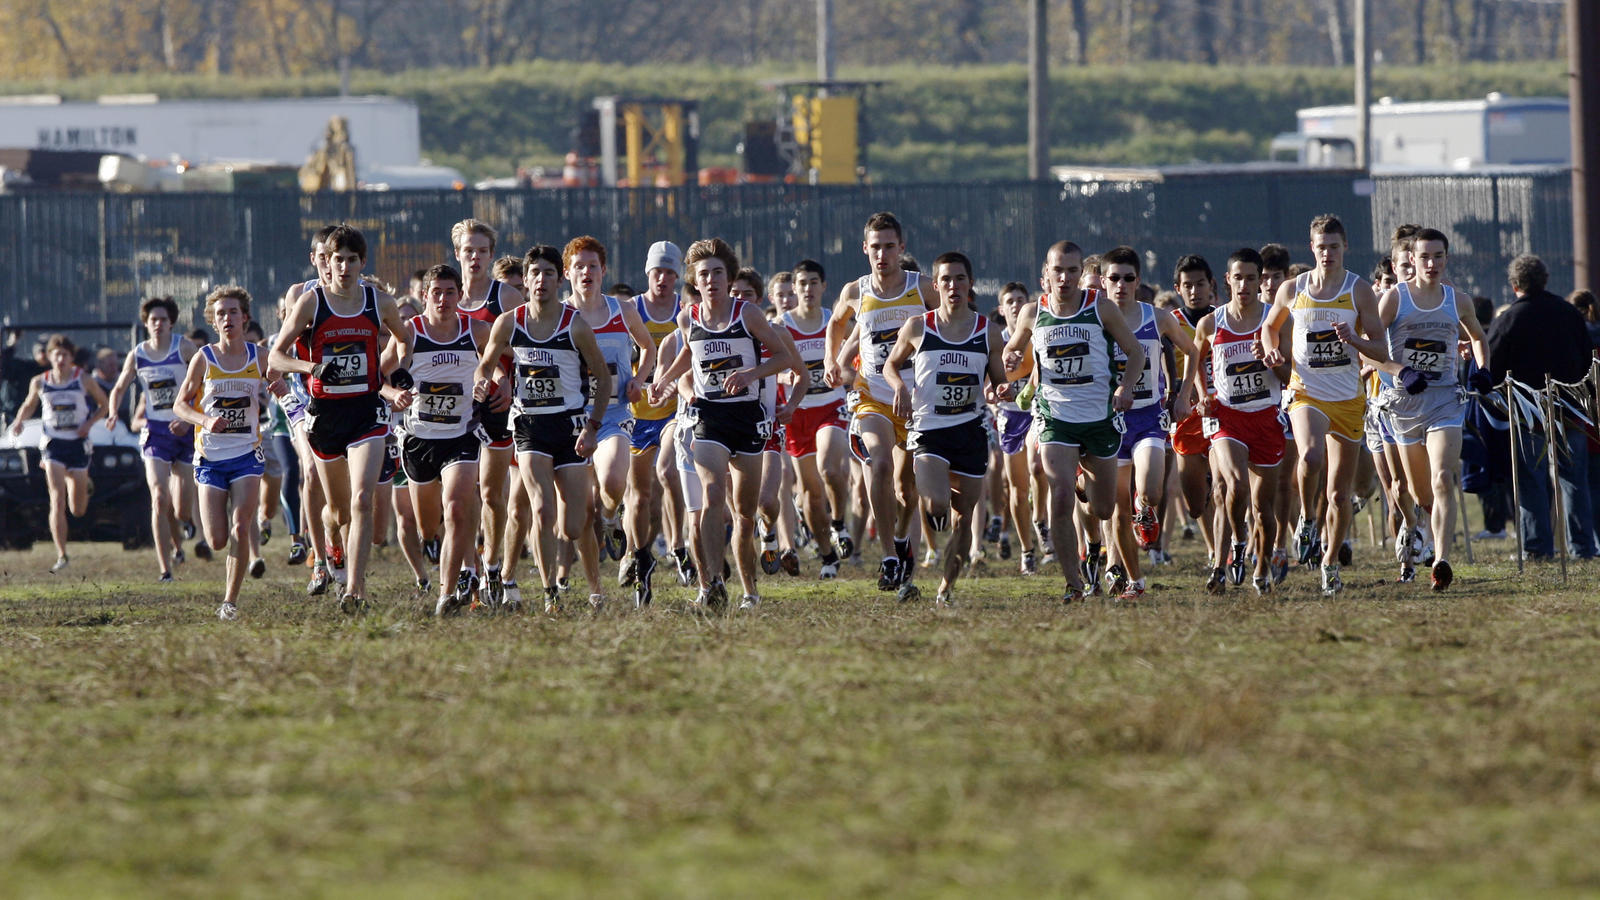 competitive price de823 c7618 Nike Cross Nationals winners crowned - Nike News